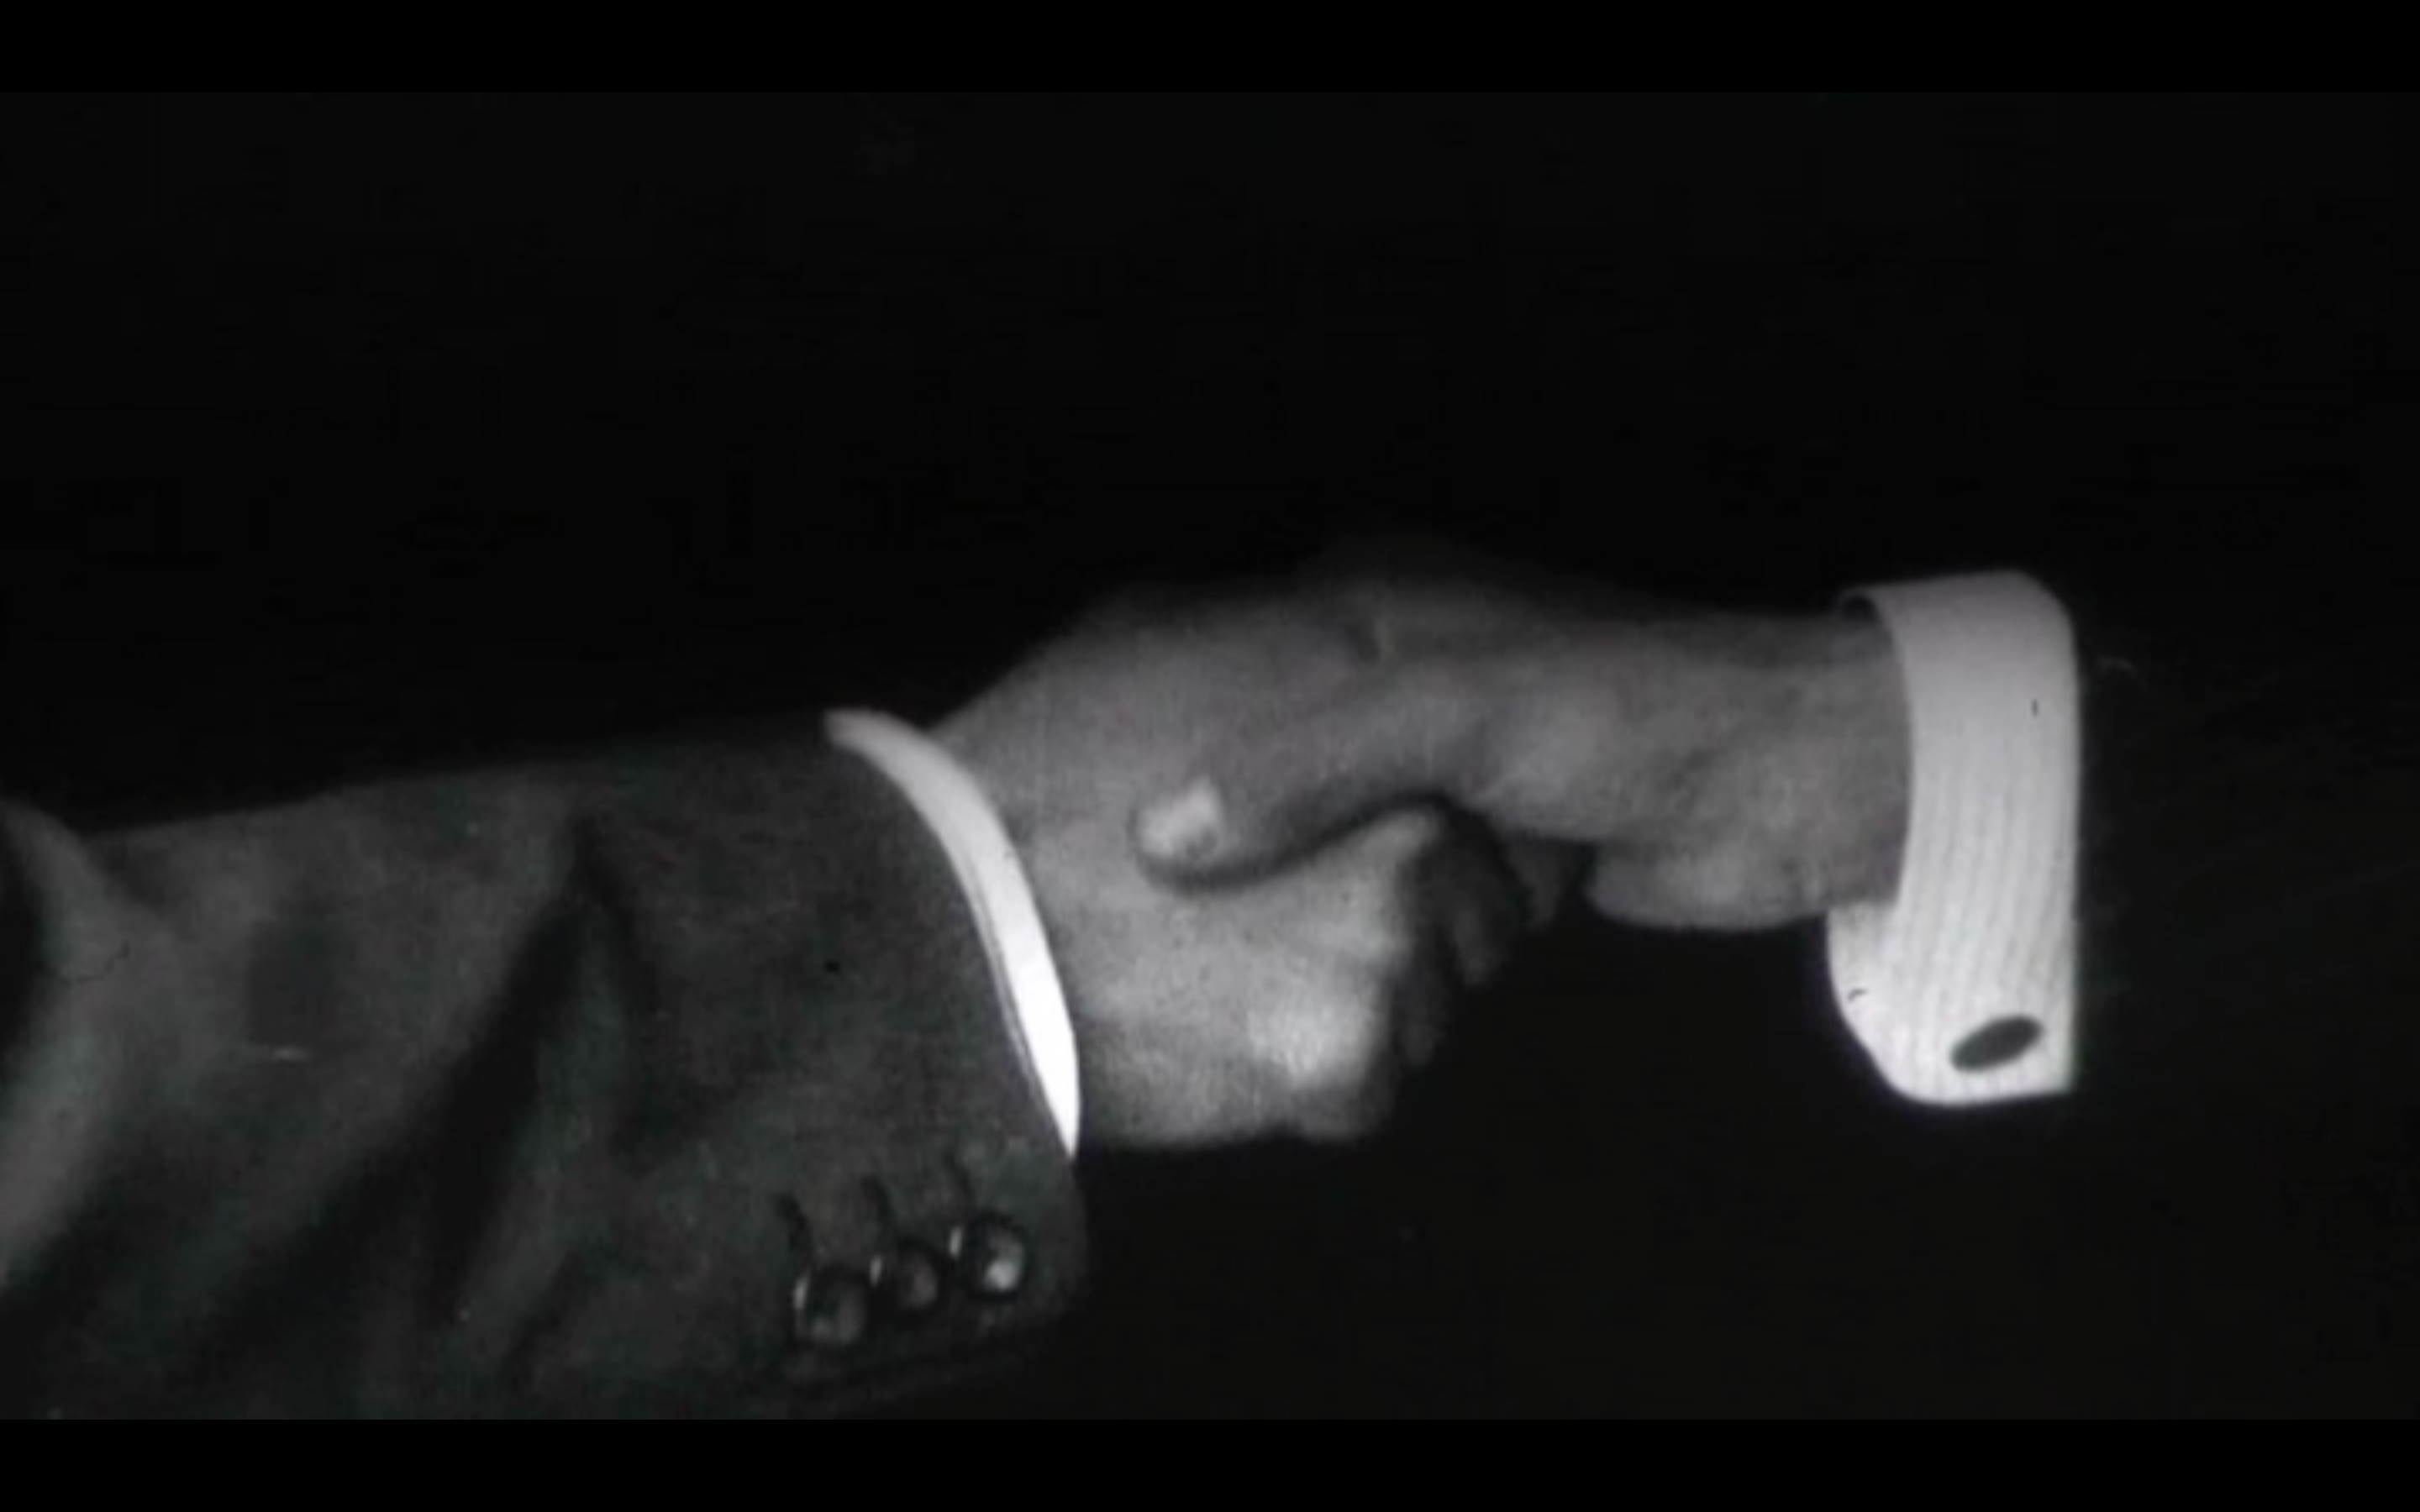 black and white archive film footage of two hands shaking. cuffs of men's clothing can be seen